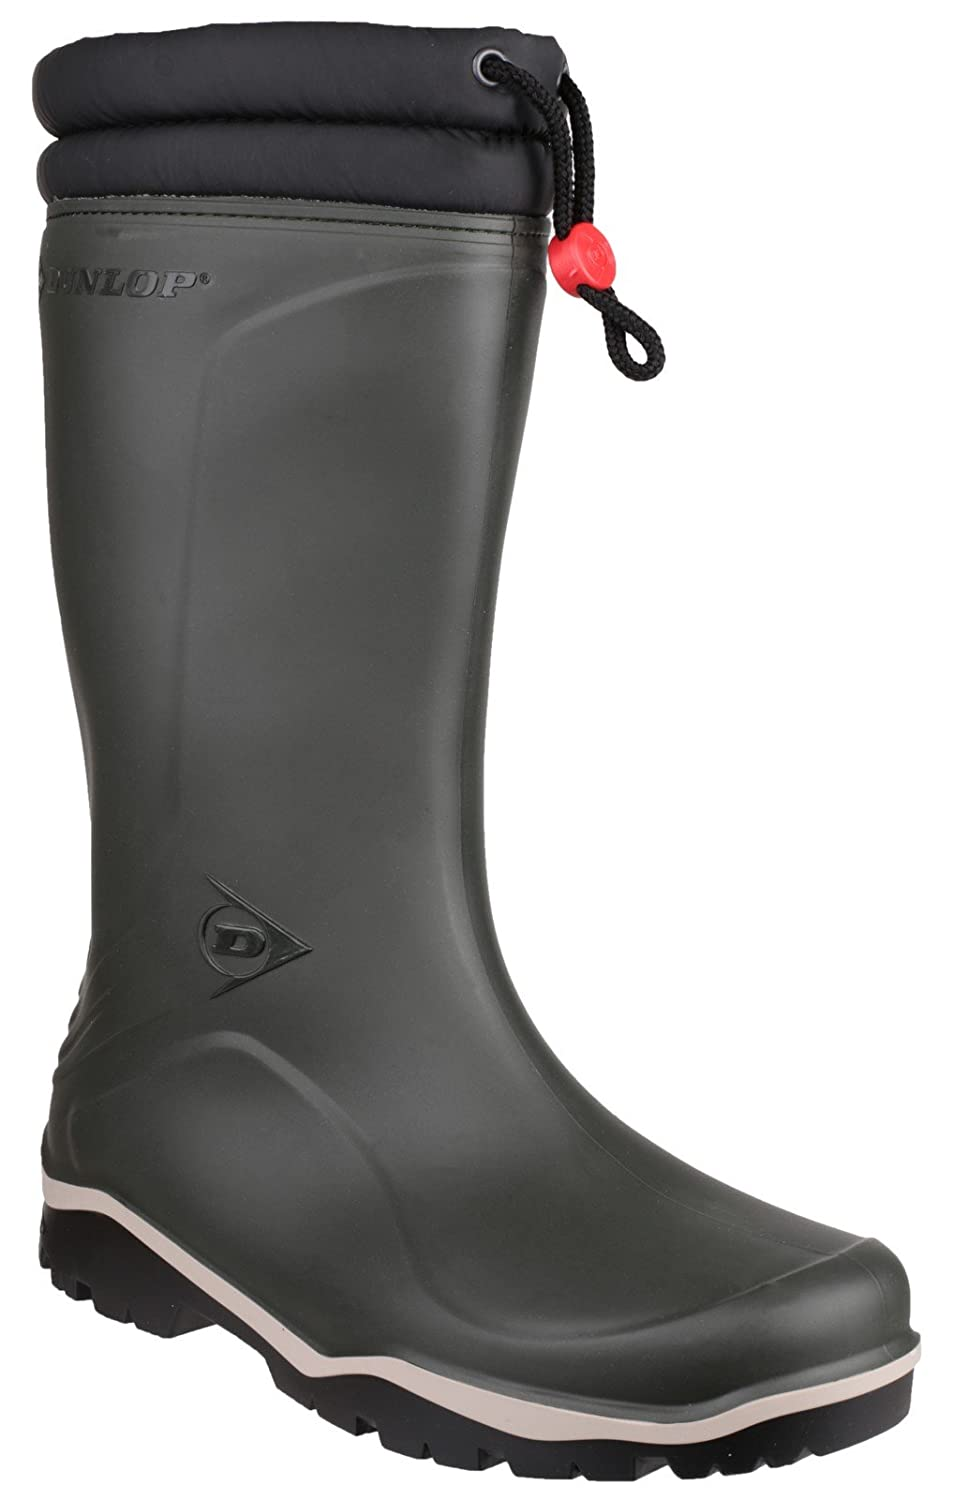 Dunlop Blizzard Fur Lining K454061 Wellingtons Non Safety Waterproof